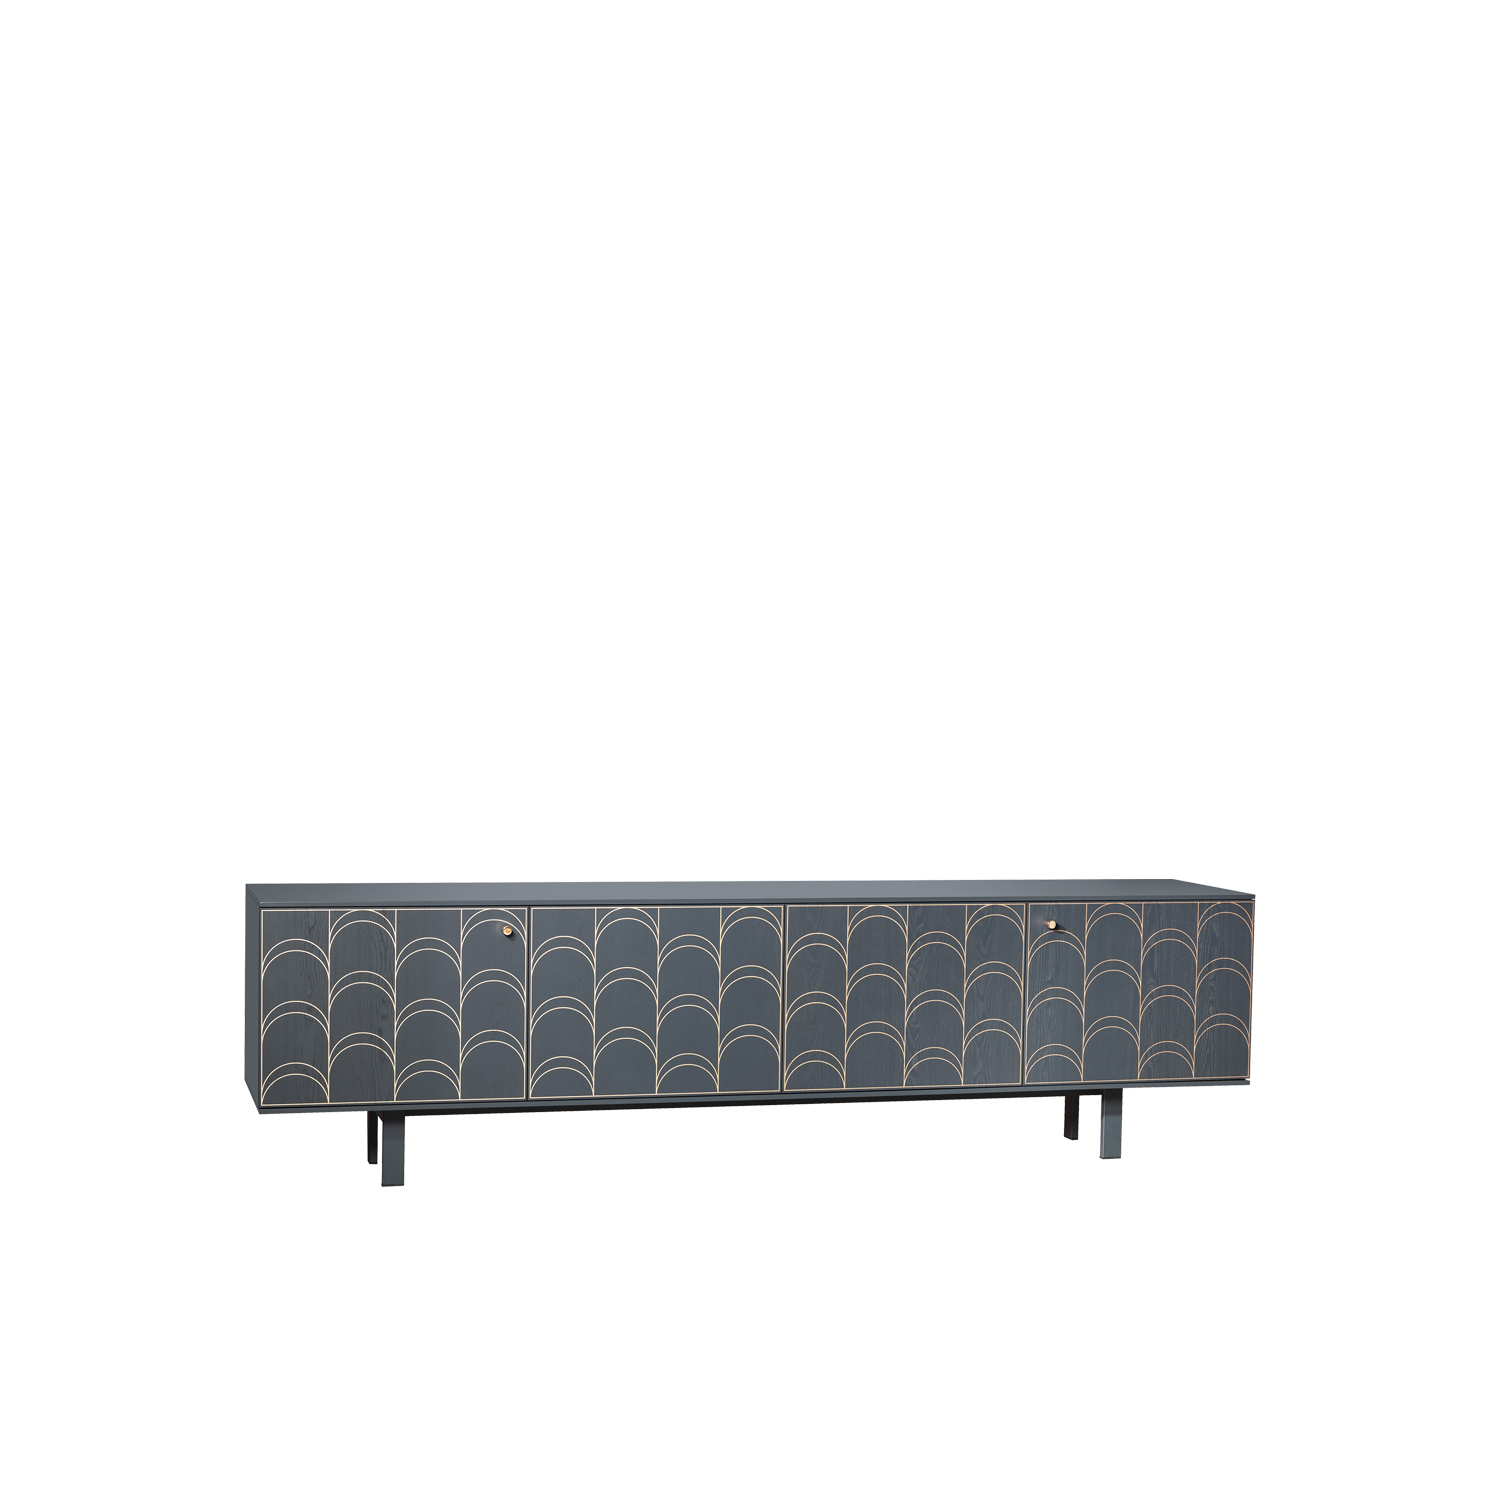 Célia Sideboard - Célia takes inspiration from the Art Déco movement of the 1920s and brings it to a current, highimpact context. The protagonist is the decoration which reminds us just how much a weave can enrich an environment, conversing with different materials such as wood and copper. The doors open like a book whilst the pattern is silk-screen printed on ash or walnut.